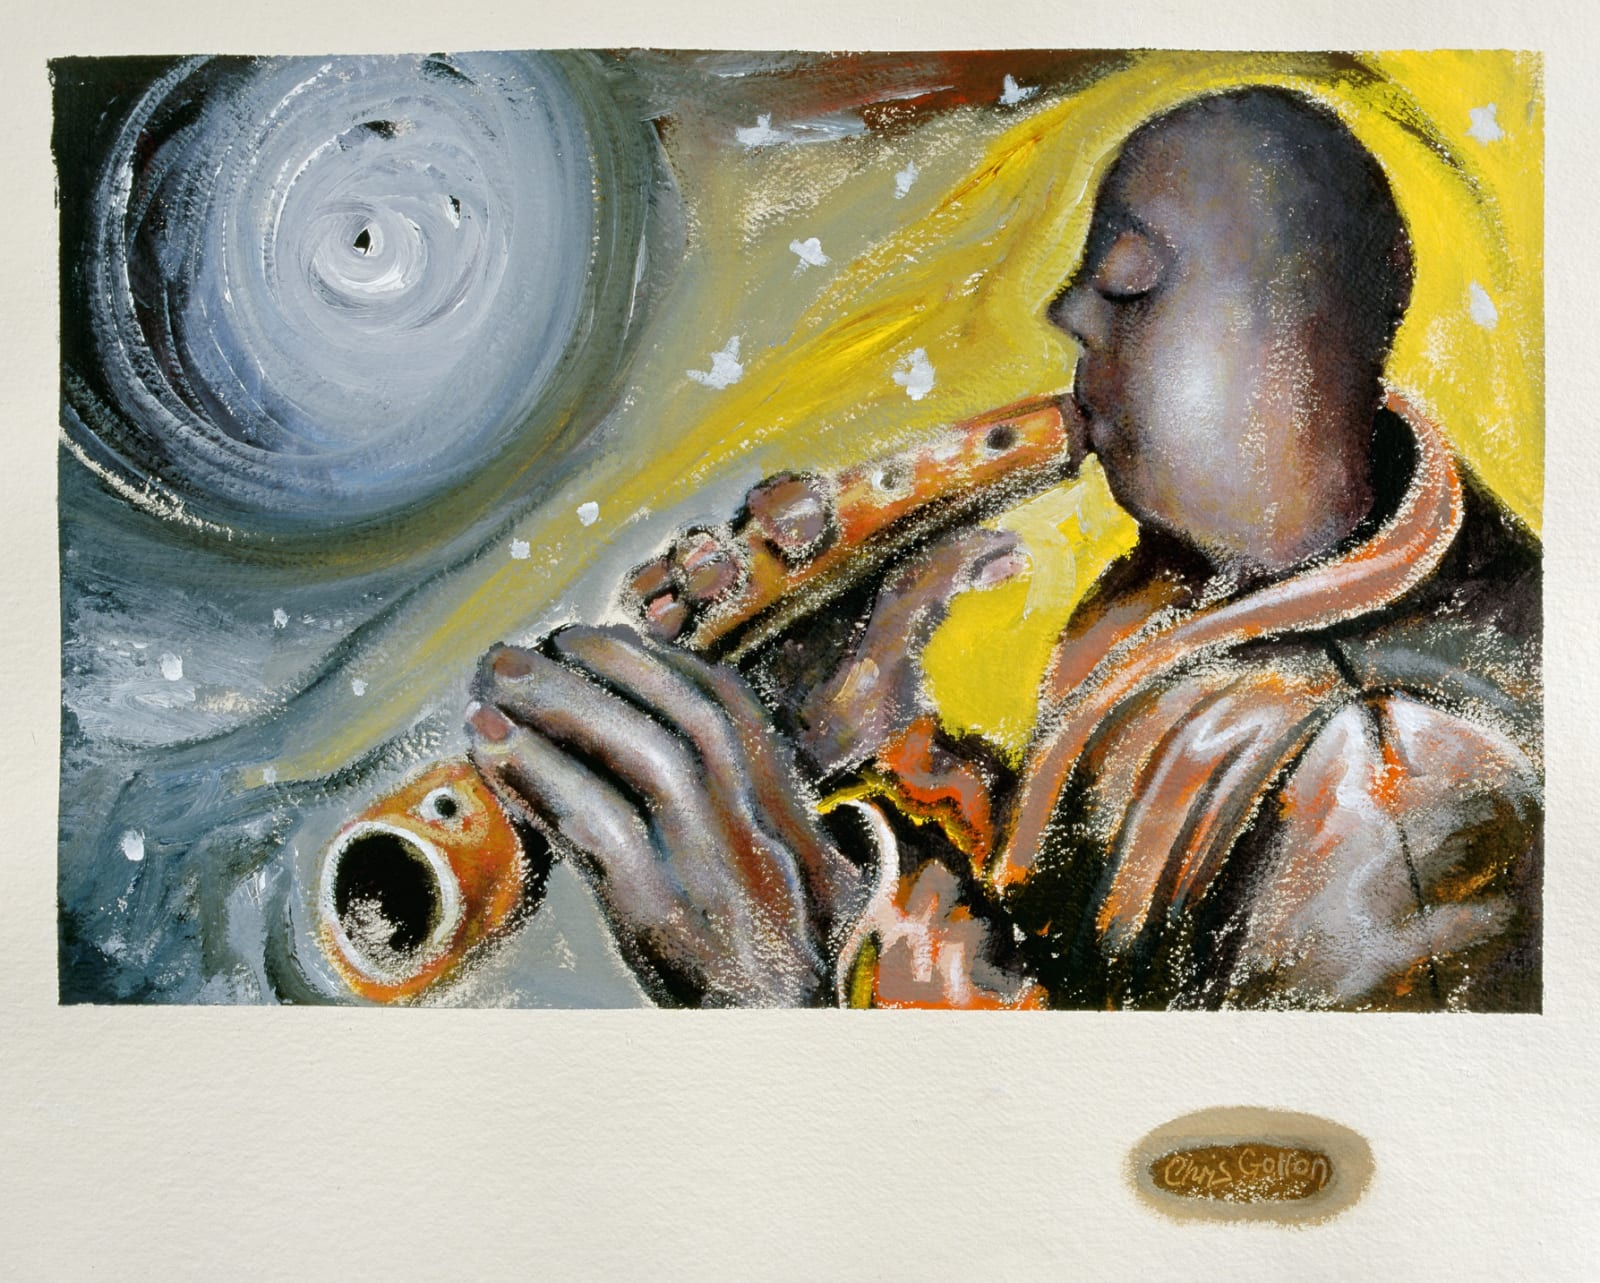 Flute Player, acrylic on khadi paper. 31 x 24 inches (79 x 61cm), 2000. Private collection.